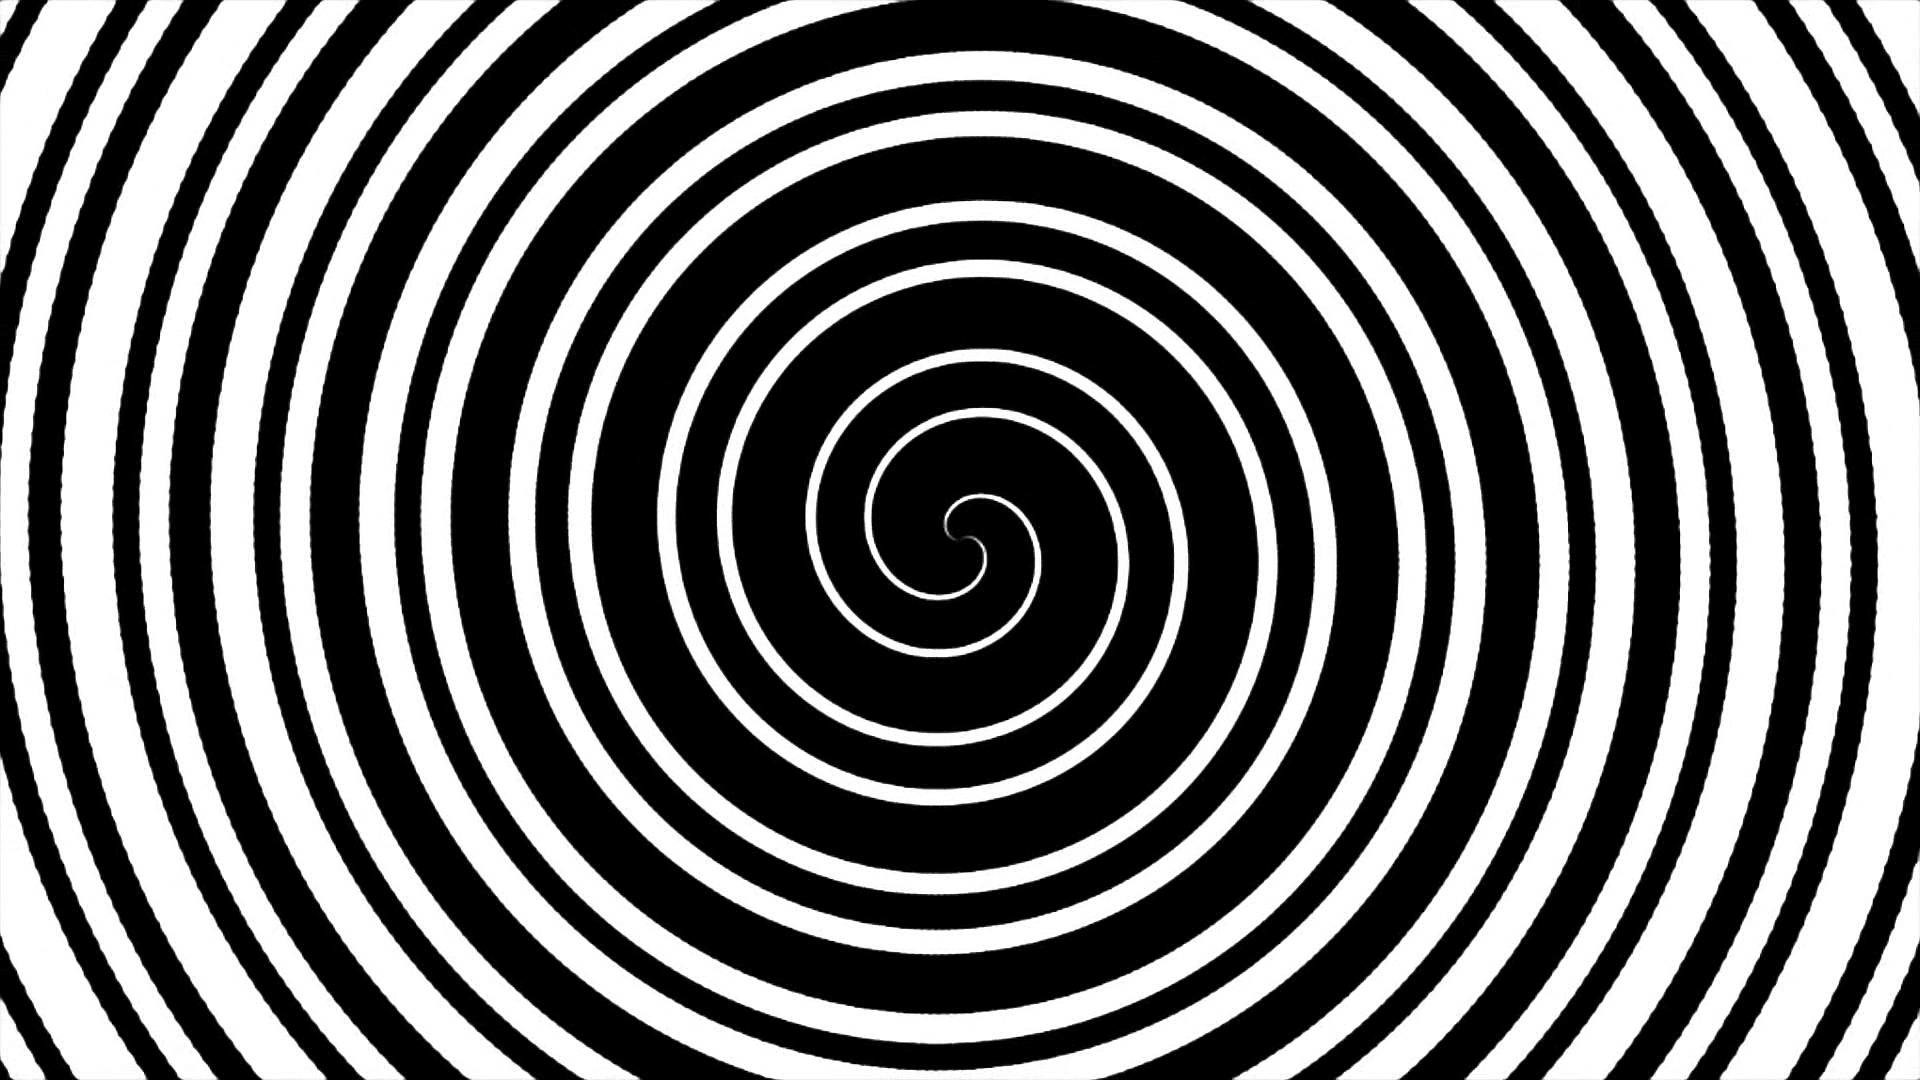 Hypnosis Moving Wallpaper 67 images 1920x1080